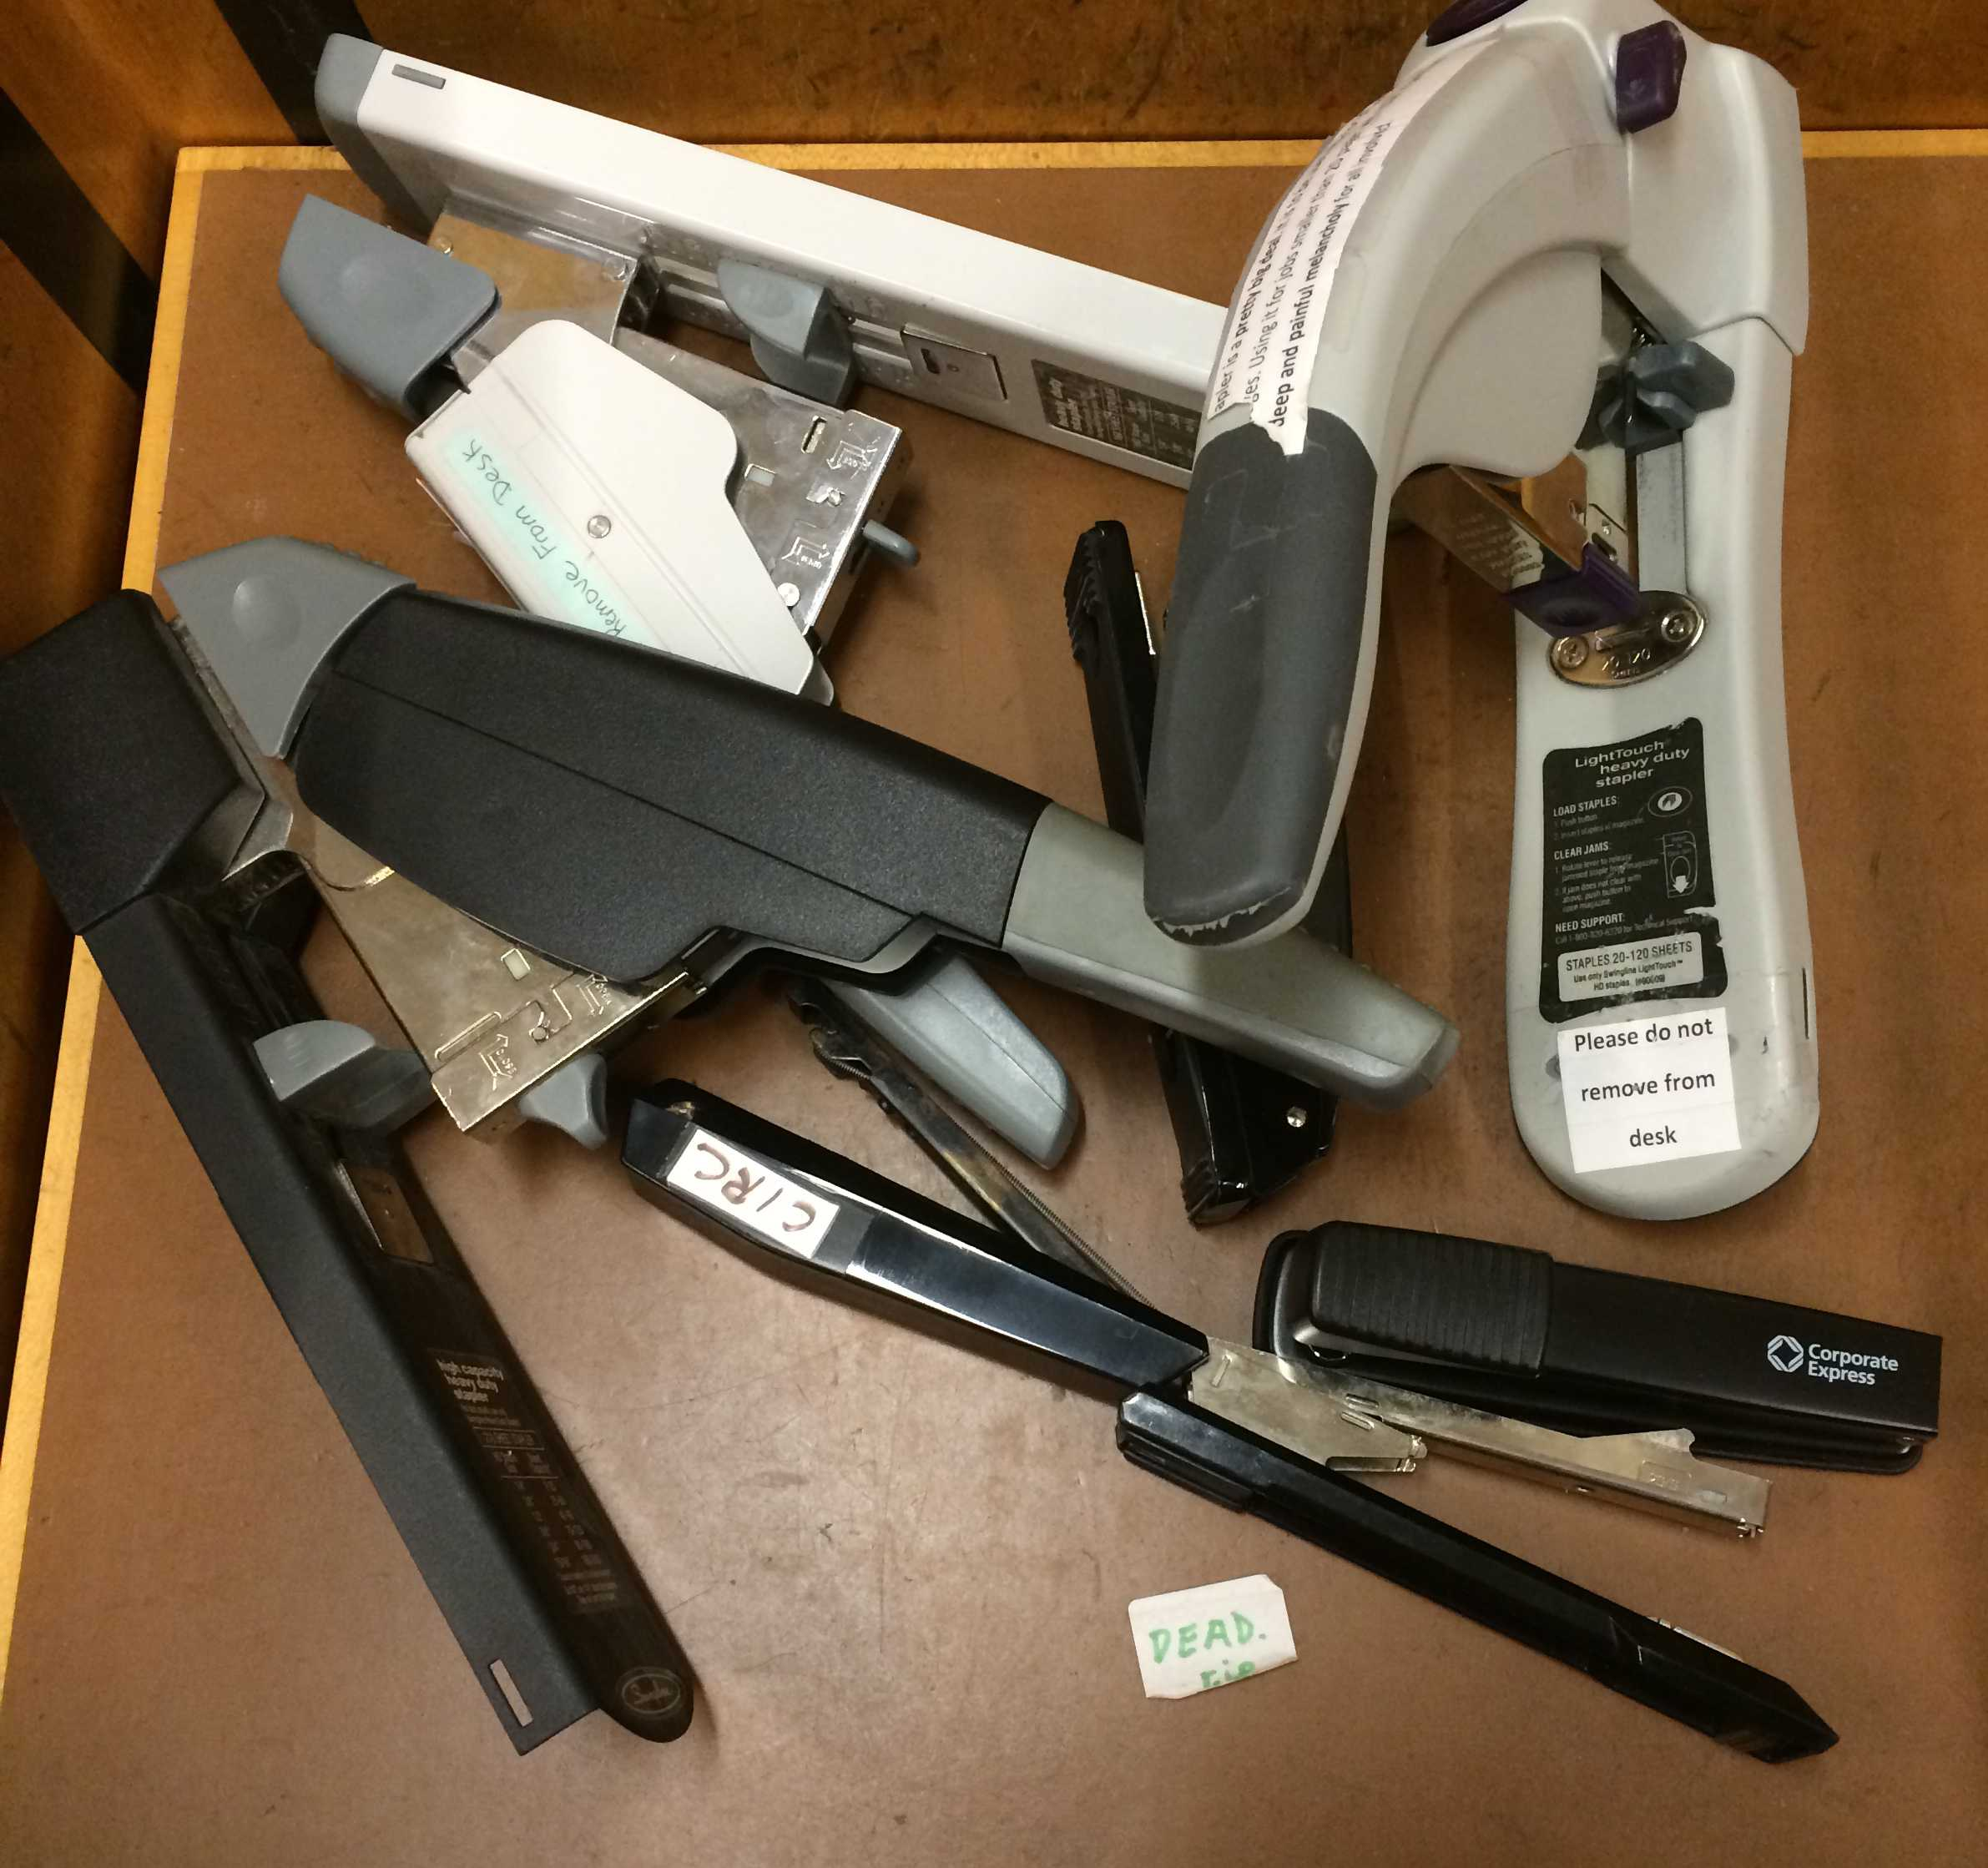 Pictured above are some of the staplers the library has been forced to replace this year. In the midst of student outrage, the library has announced they will continue to provide staplers.